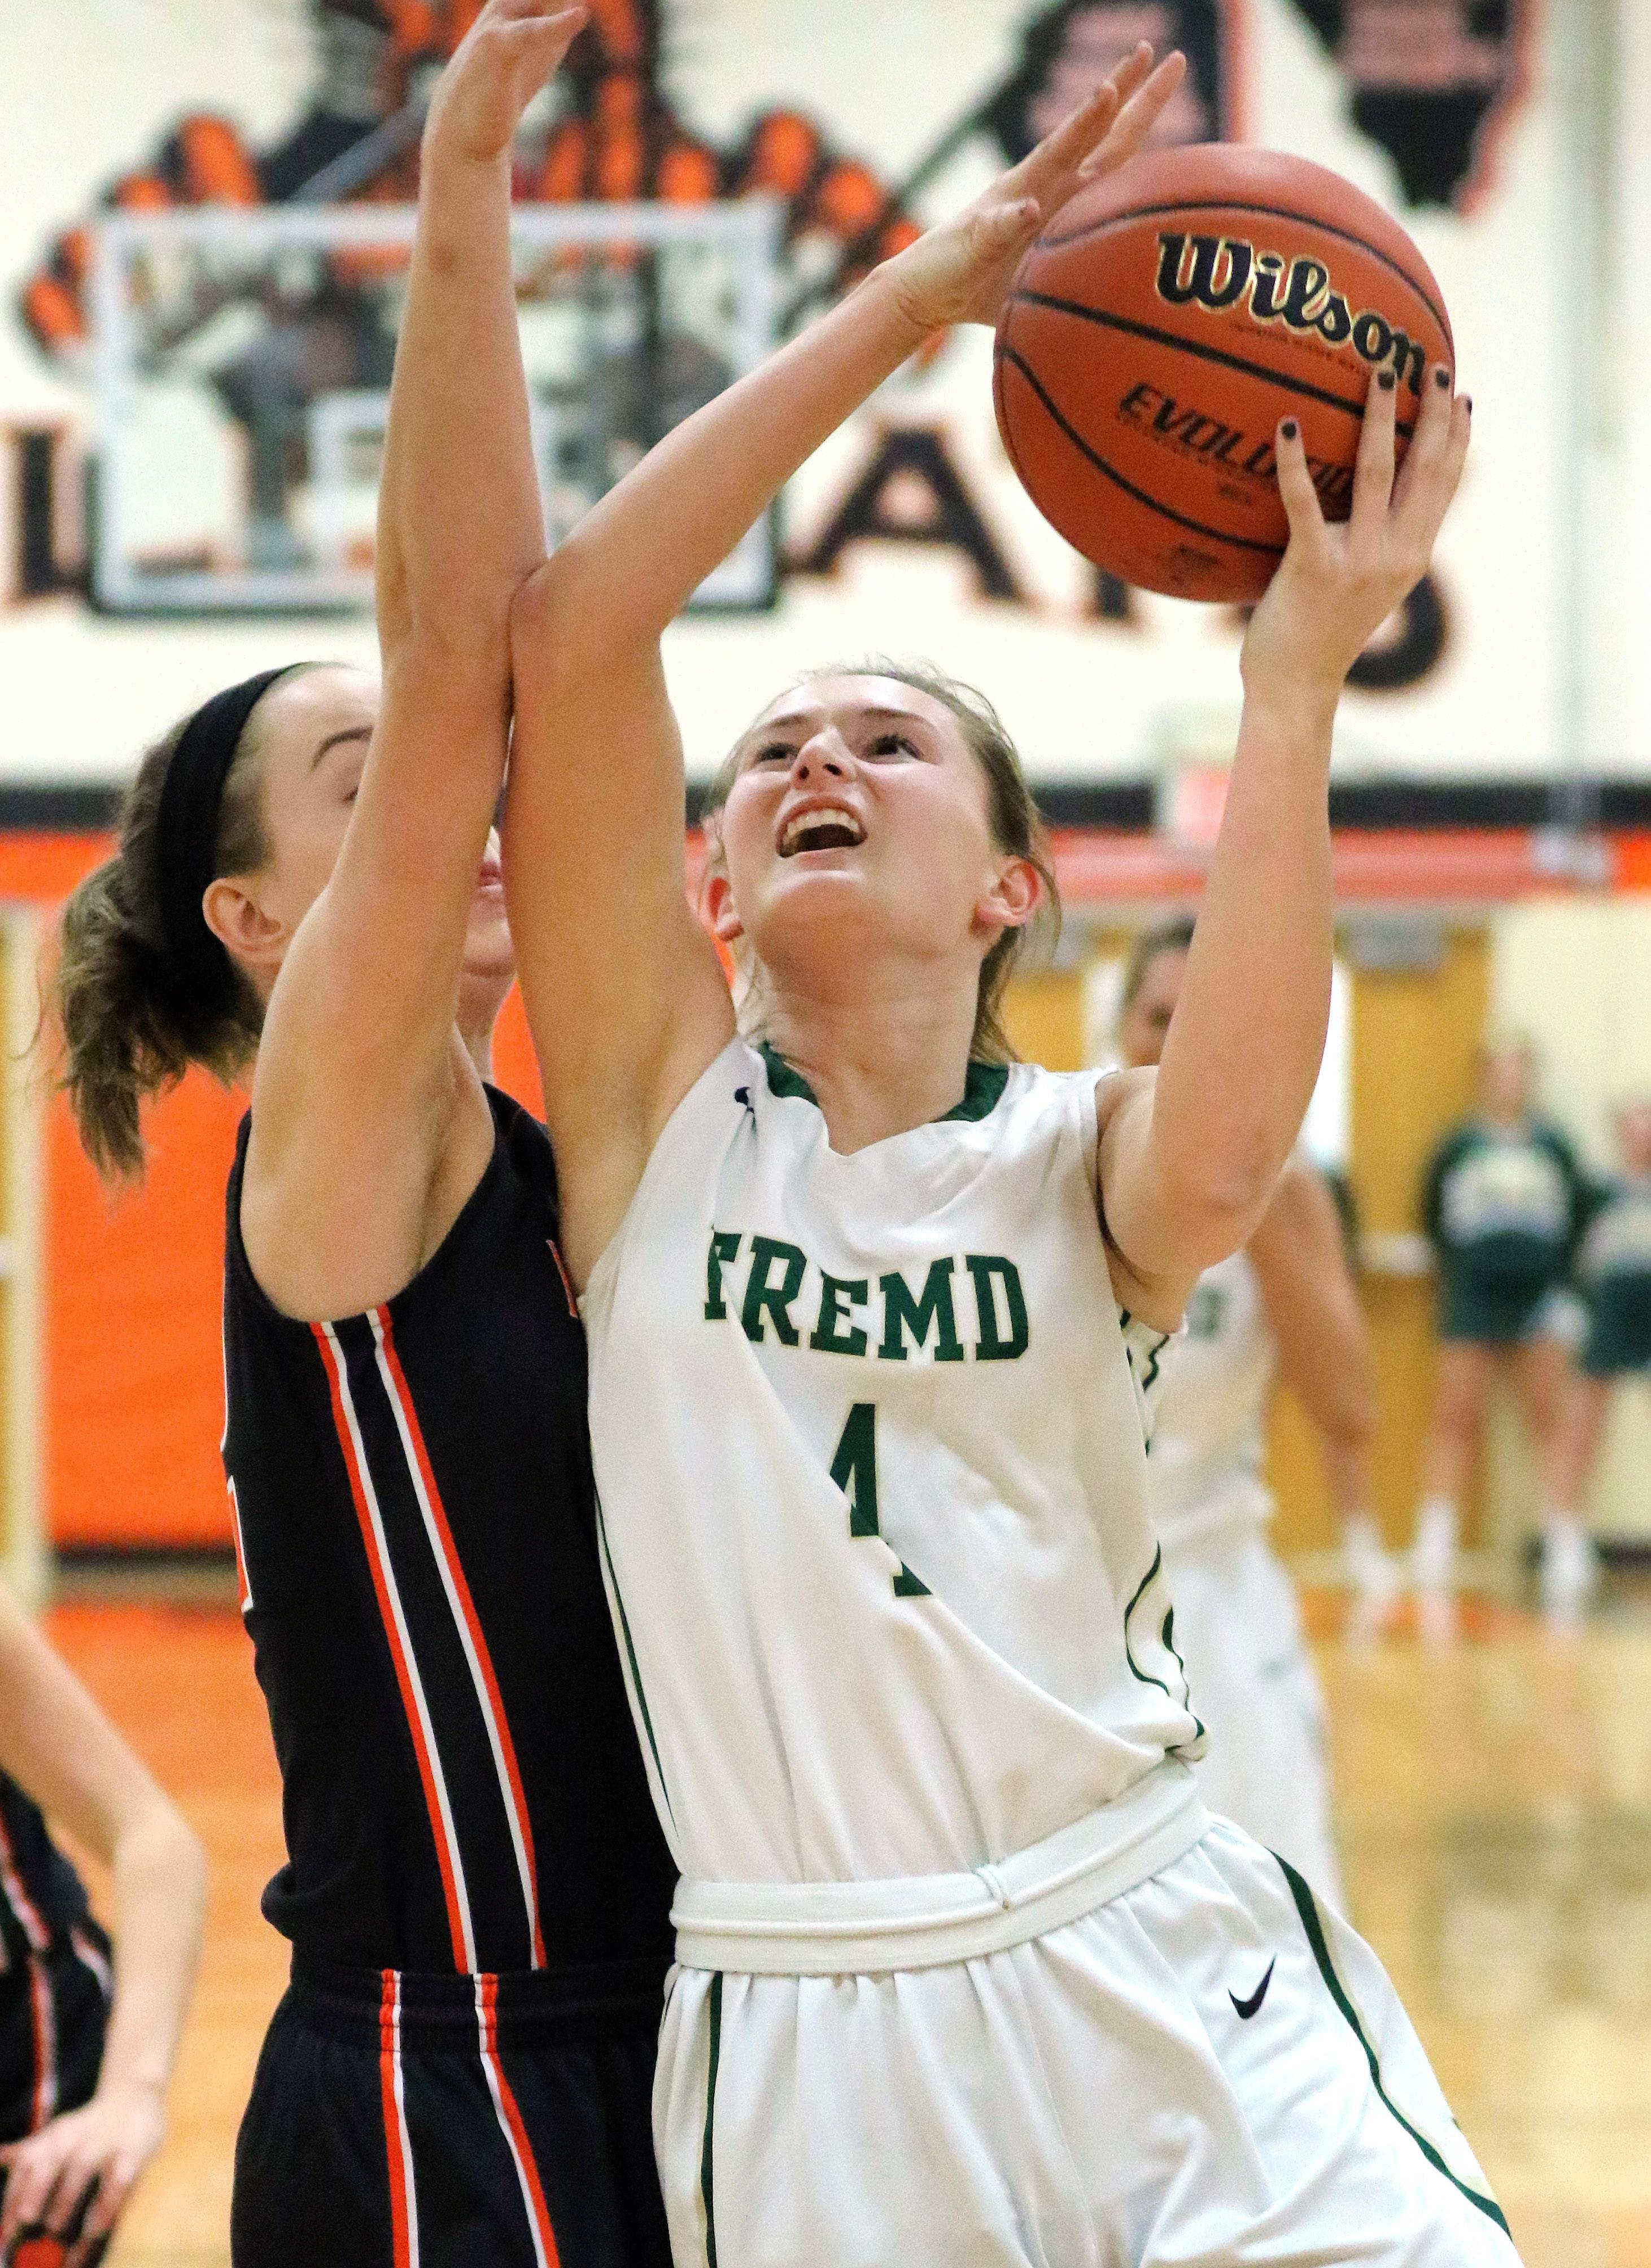 Missy Adrian, at right driving against Libertyville, was a two-sport standout in multiple seasons for Fremd.